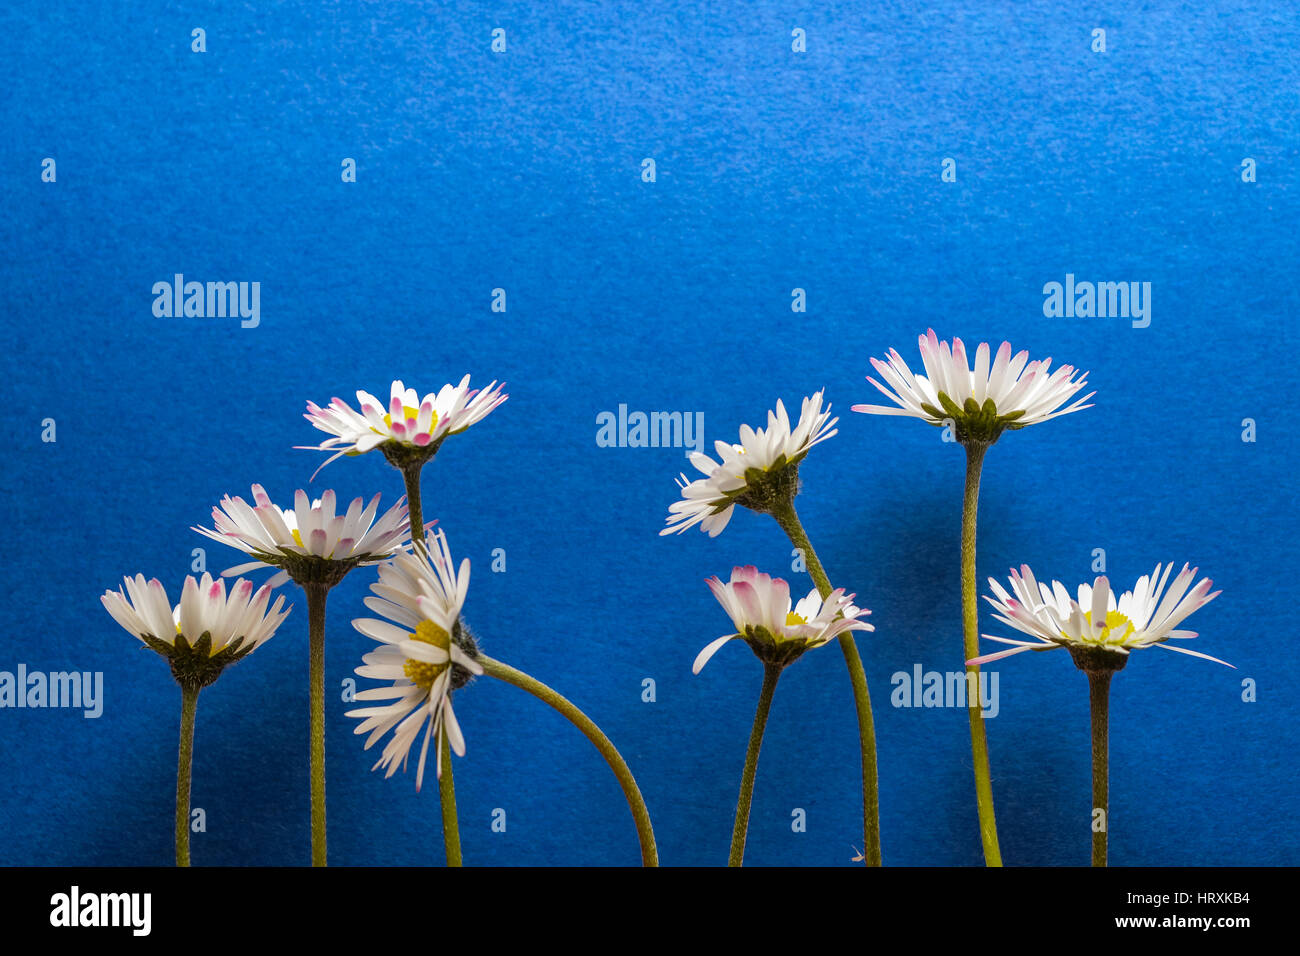 Group of little daisy flowers on dark blue textured background stock group of little daisy flowers on dark blue textured background closeup izmirmasajfo